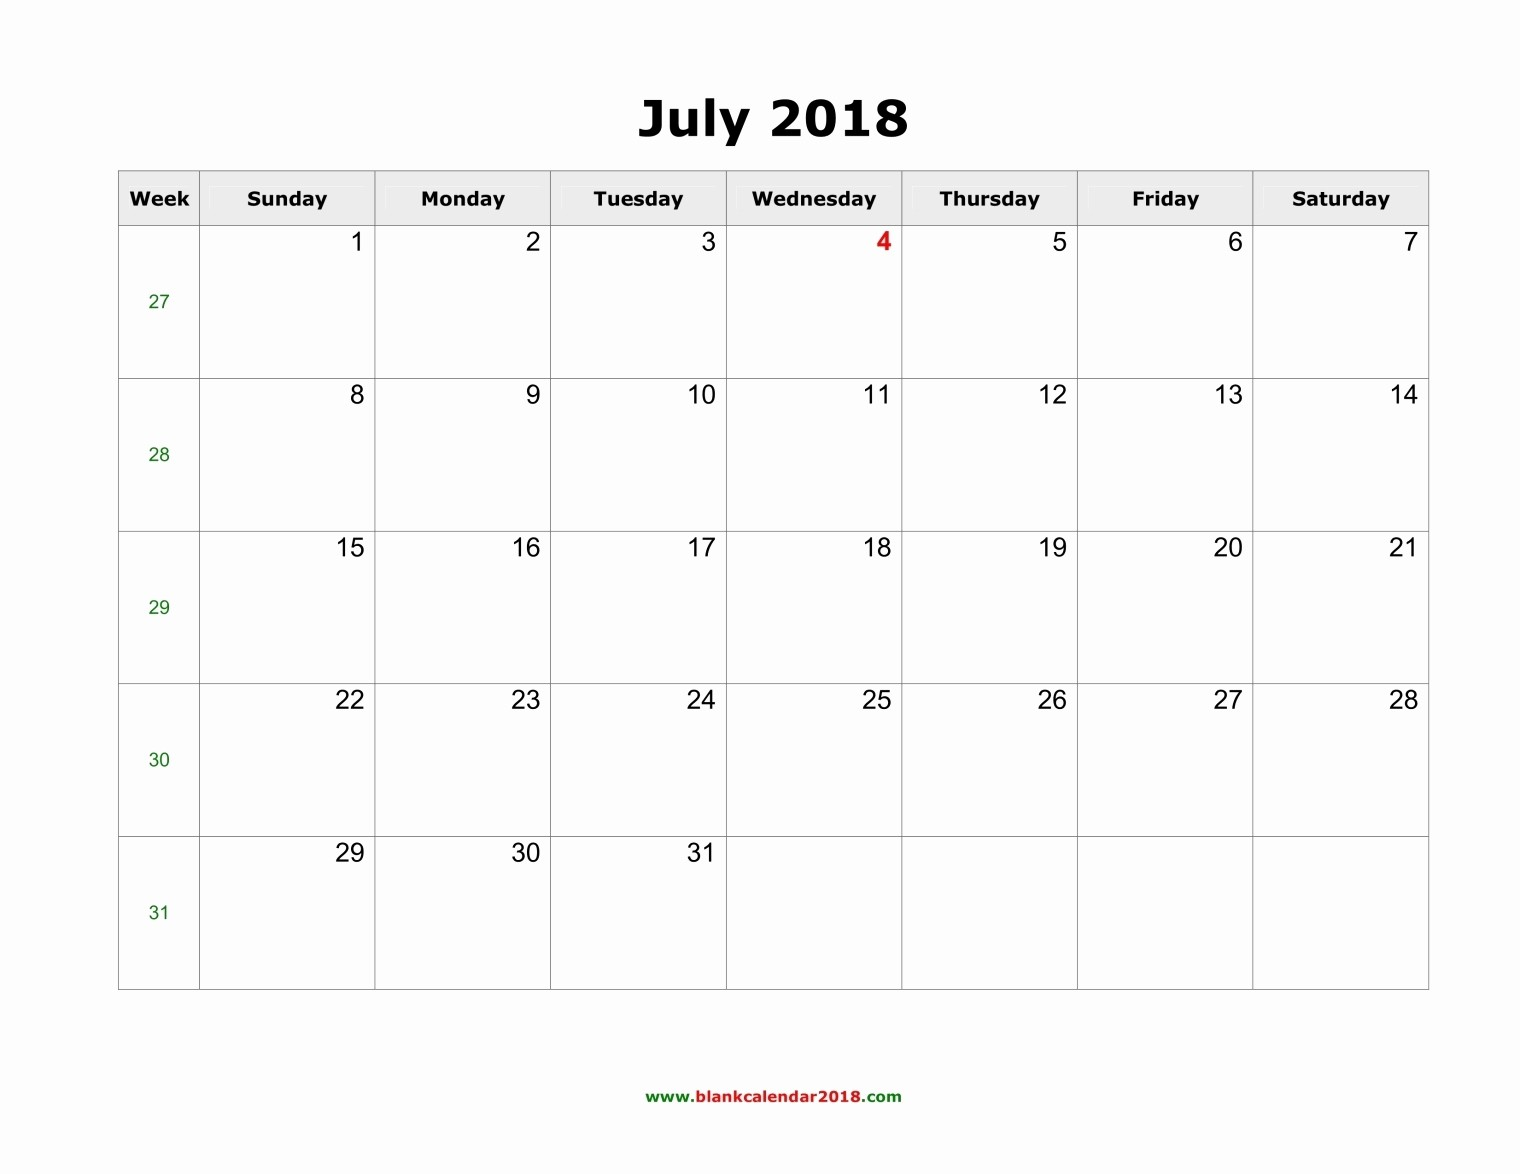 Microsoft Word 2018 Calendar Templates Beautiful Blank Calendar for July 2018